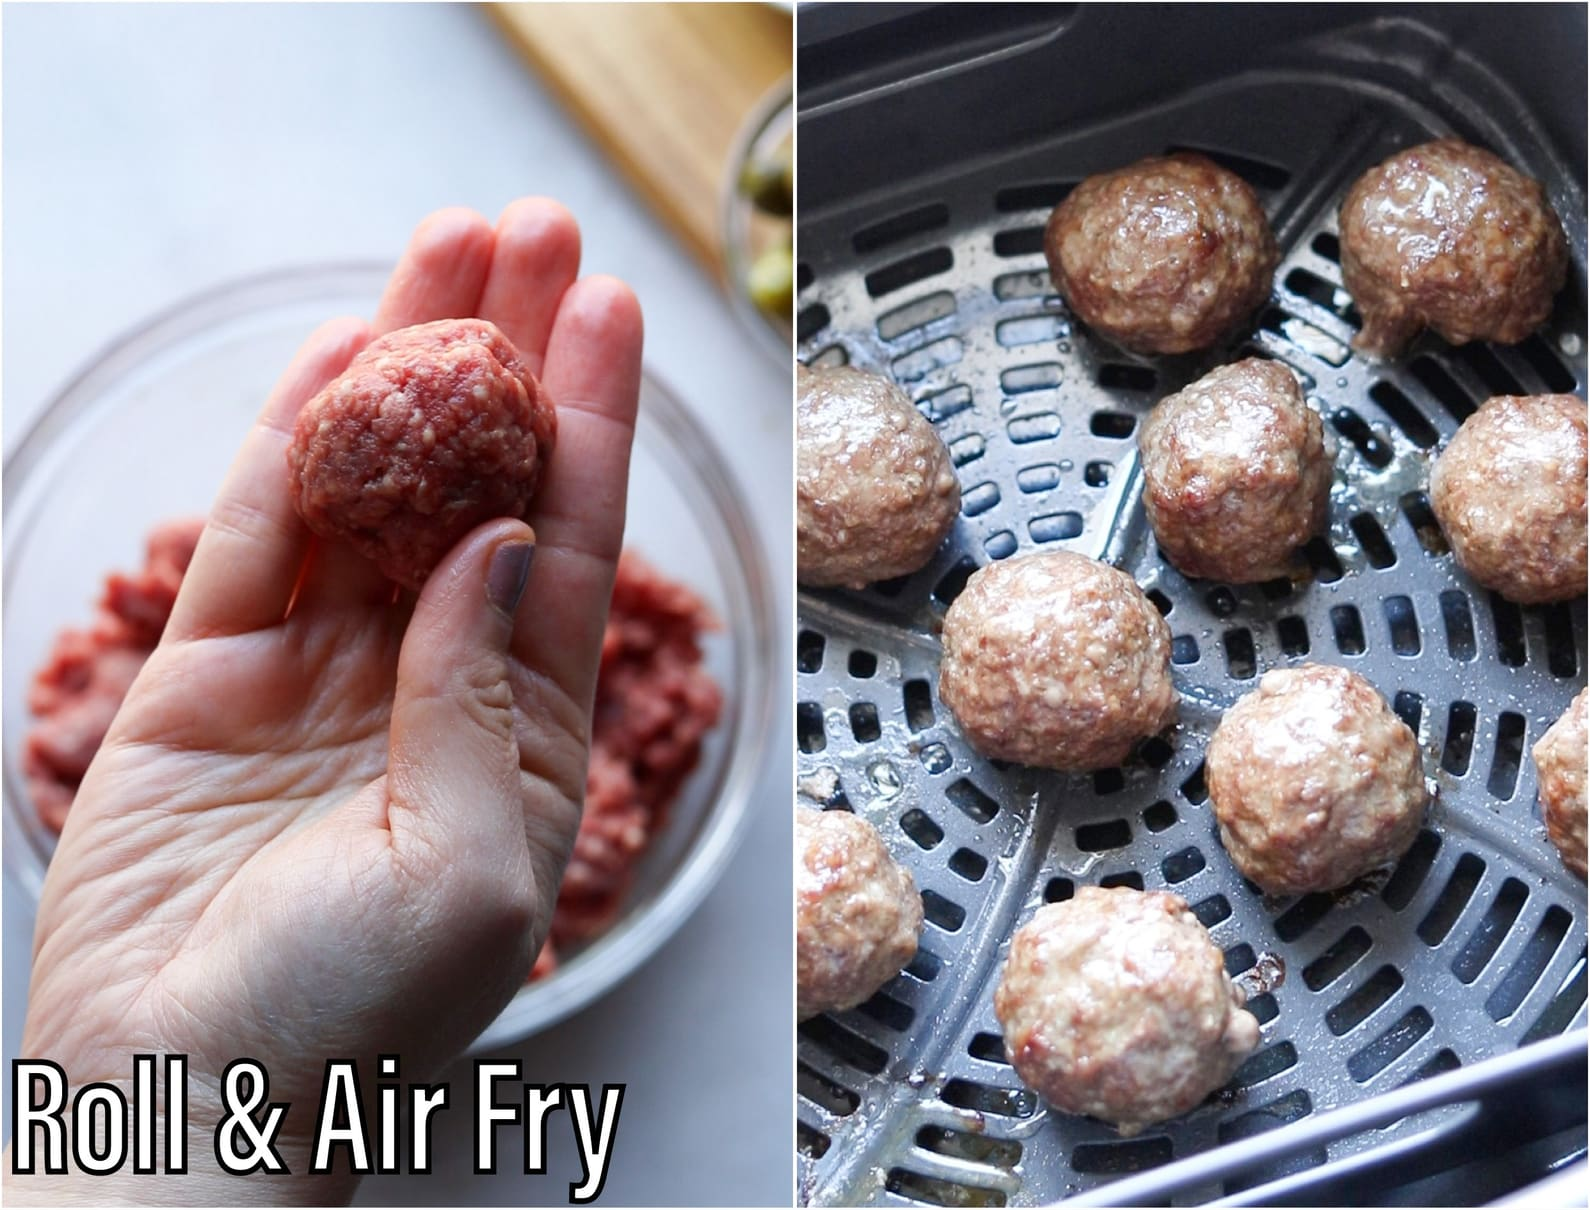 A collage of process shots, showing hands rolling the meat into burger bites and cooking them in the air fryer.